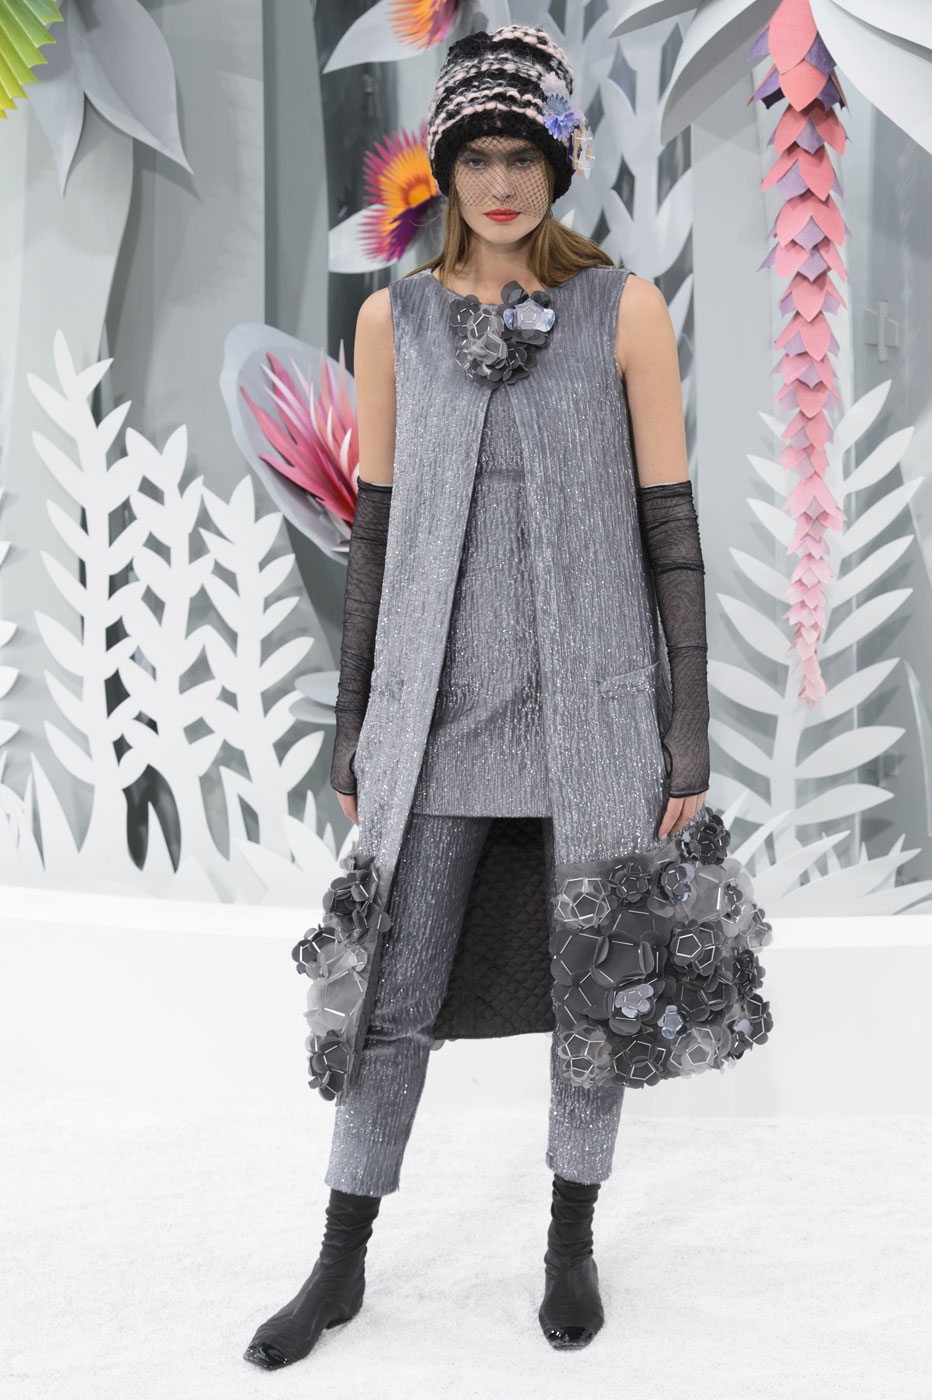 Chanel-fashion-runway-show-haute-couture-paris-spring-summer-2015-the-impression-109